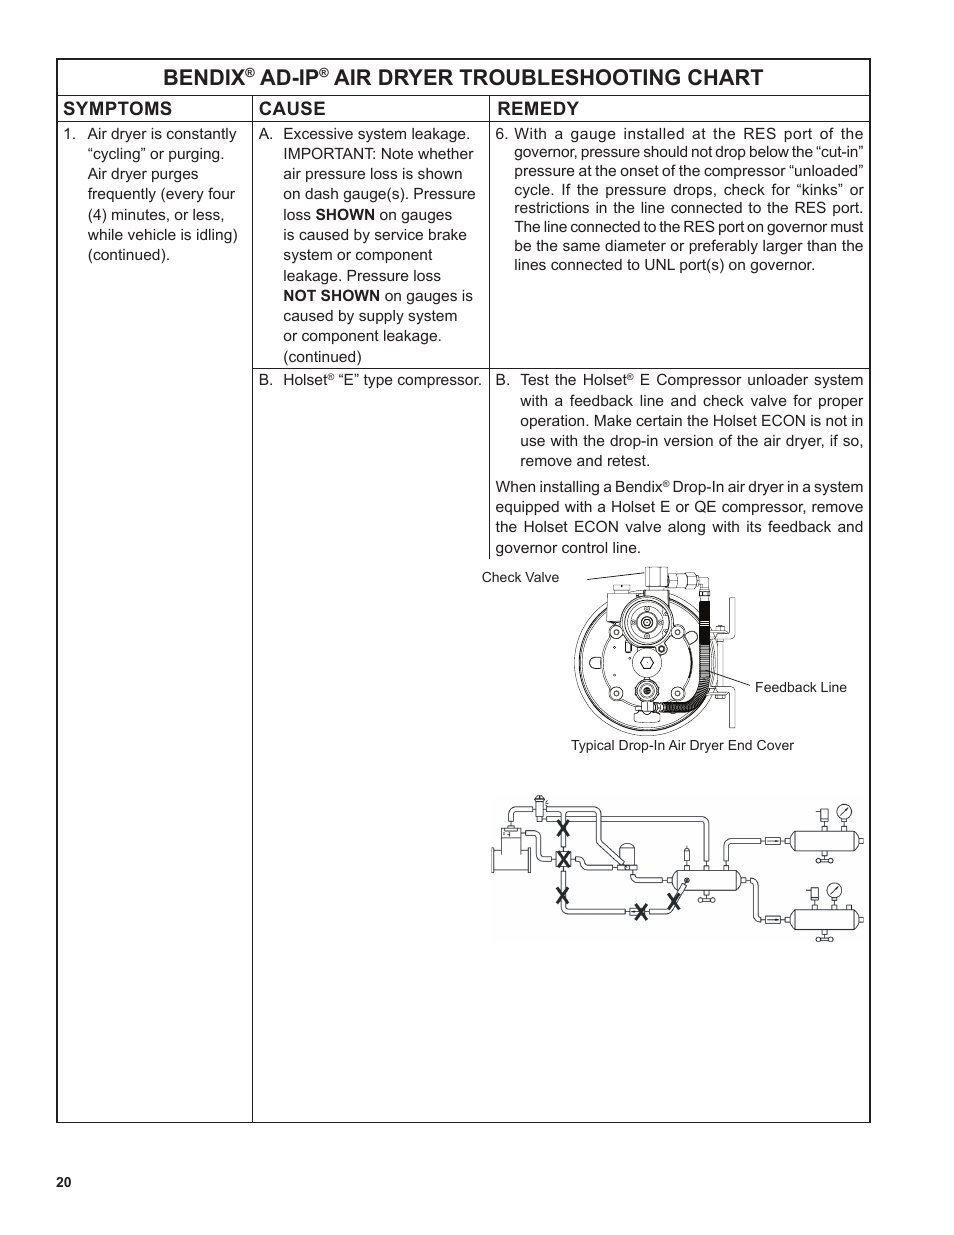 Air Dryer For Air Compressor >> Bendix, Ad-ip, Air dryer troubleshooting chart | Bendix ...